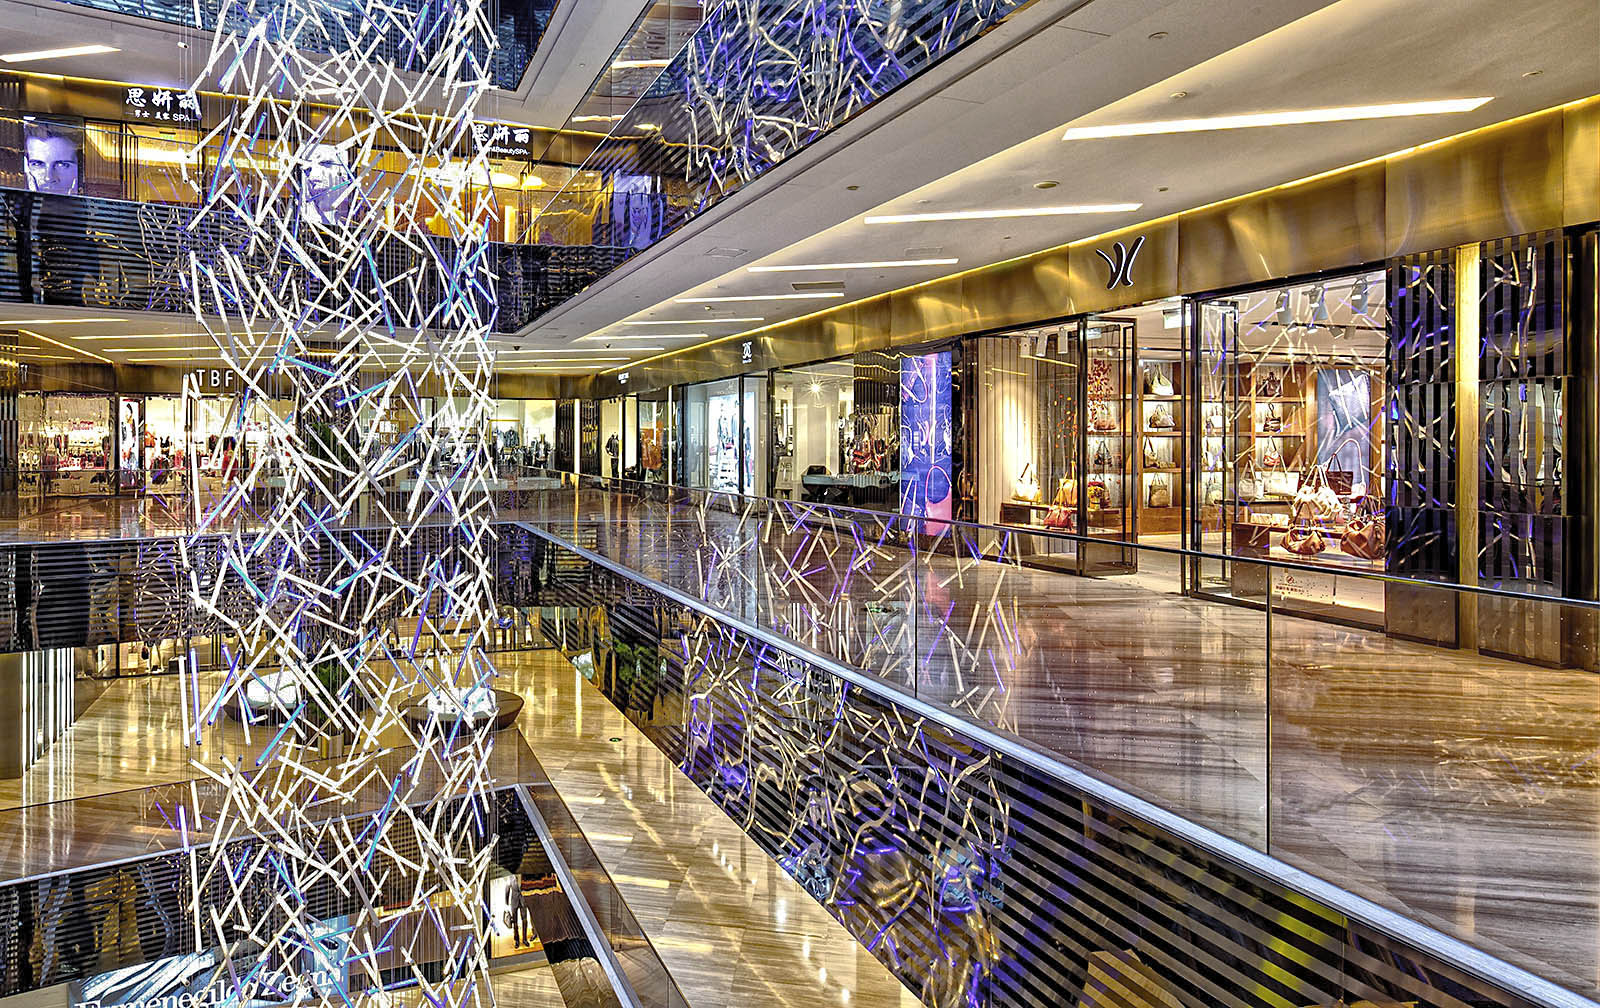 Interior and exterior architectural photography for architects of retail malls and stores in China, Asia, and the USA by Paul Dingman, architectural photographer